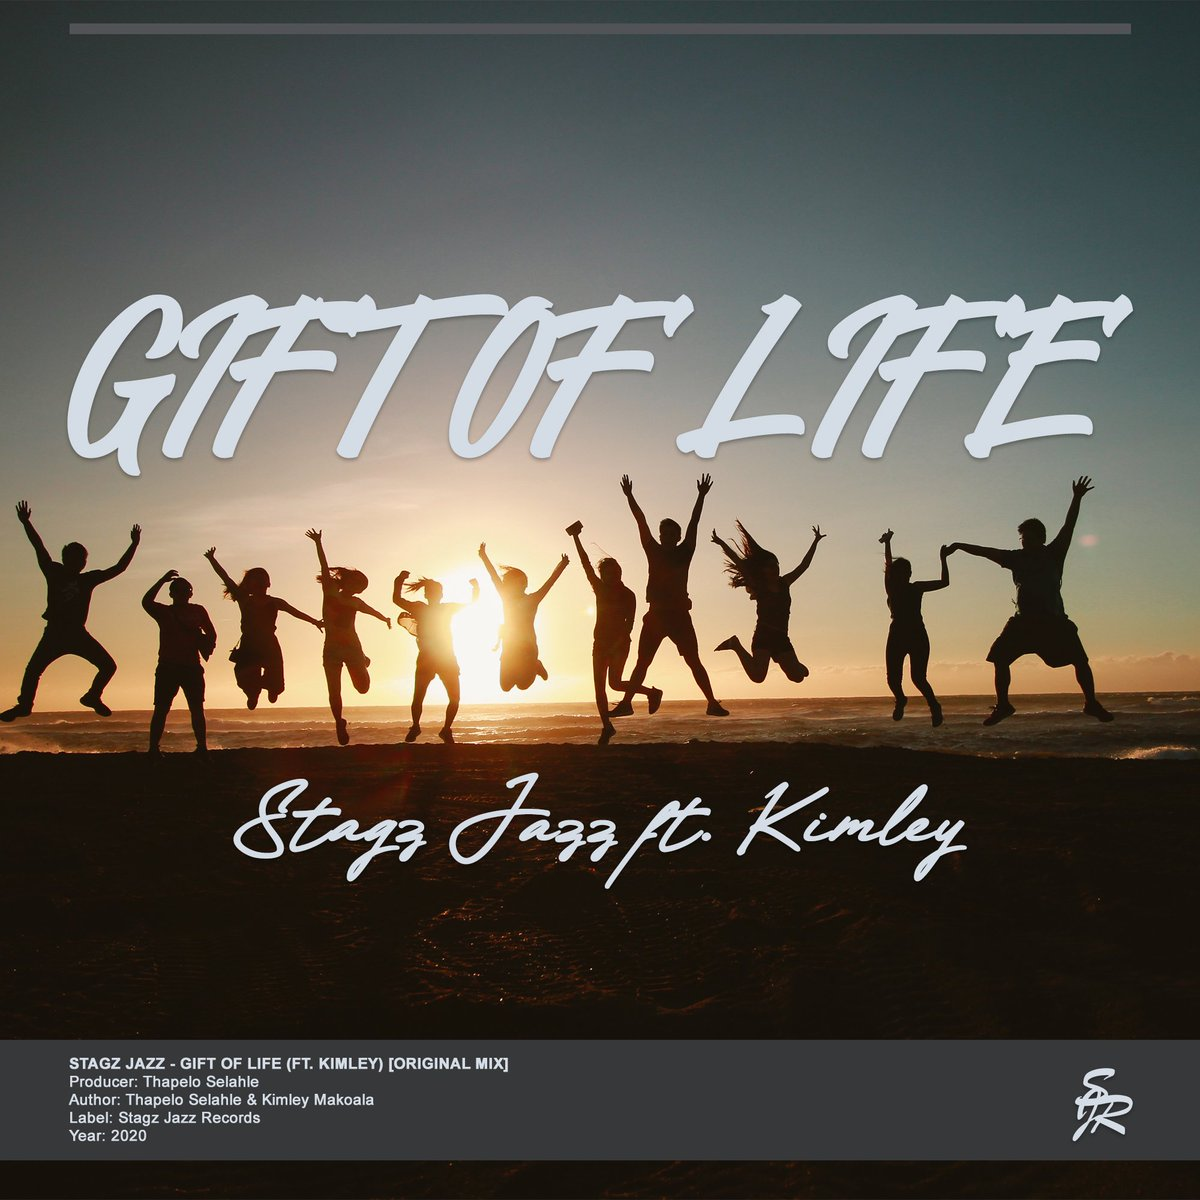 "my new single ""Gift Of Life (ft. Kimley)"" will be available for streaming on Fri, 17 Jul.  #stagzjazz #giftoflife pic.twitter.com/5zzZPO8USi"